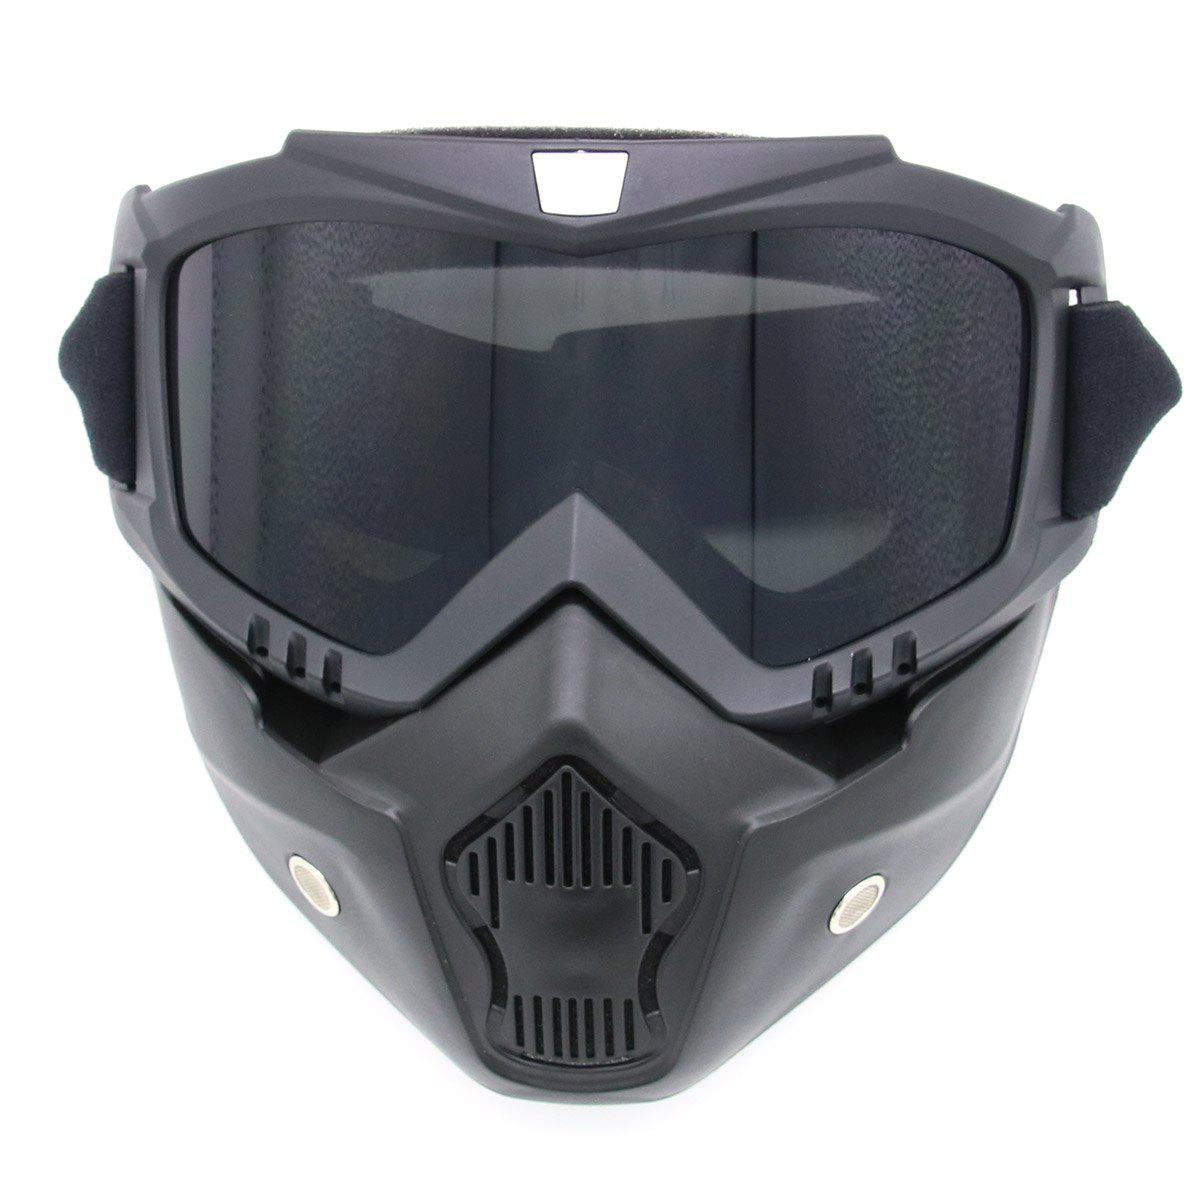 Off Road Detachable Breathable Motorcycle GogglesHOME<br><br>Color: GRAY; Gender: Unisex; Type: Cycling Glasses; Style: Fashion; Feature: Breathable,Durable,Dustproof,Windproof; Pattern Type: Others; Material: Plastic; Weight: 1.0400kg; Package Contents: 1 x Goggles;